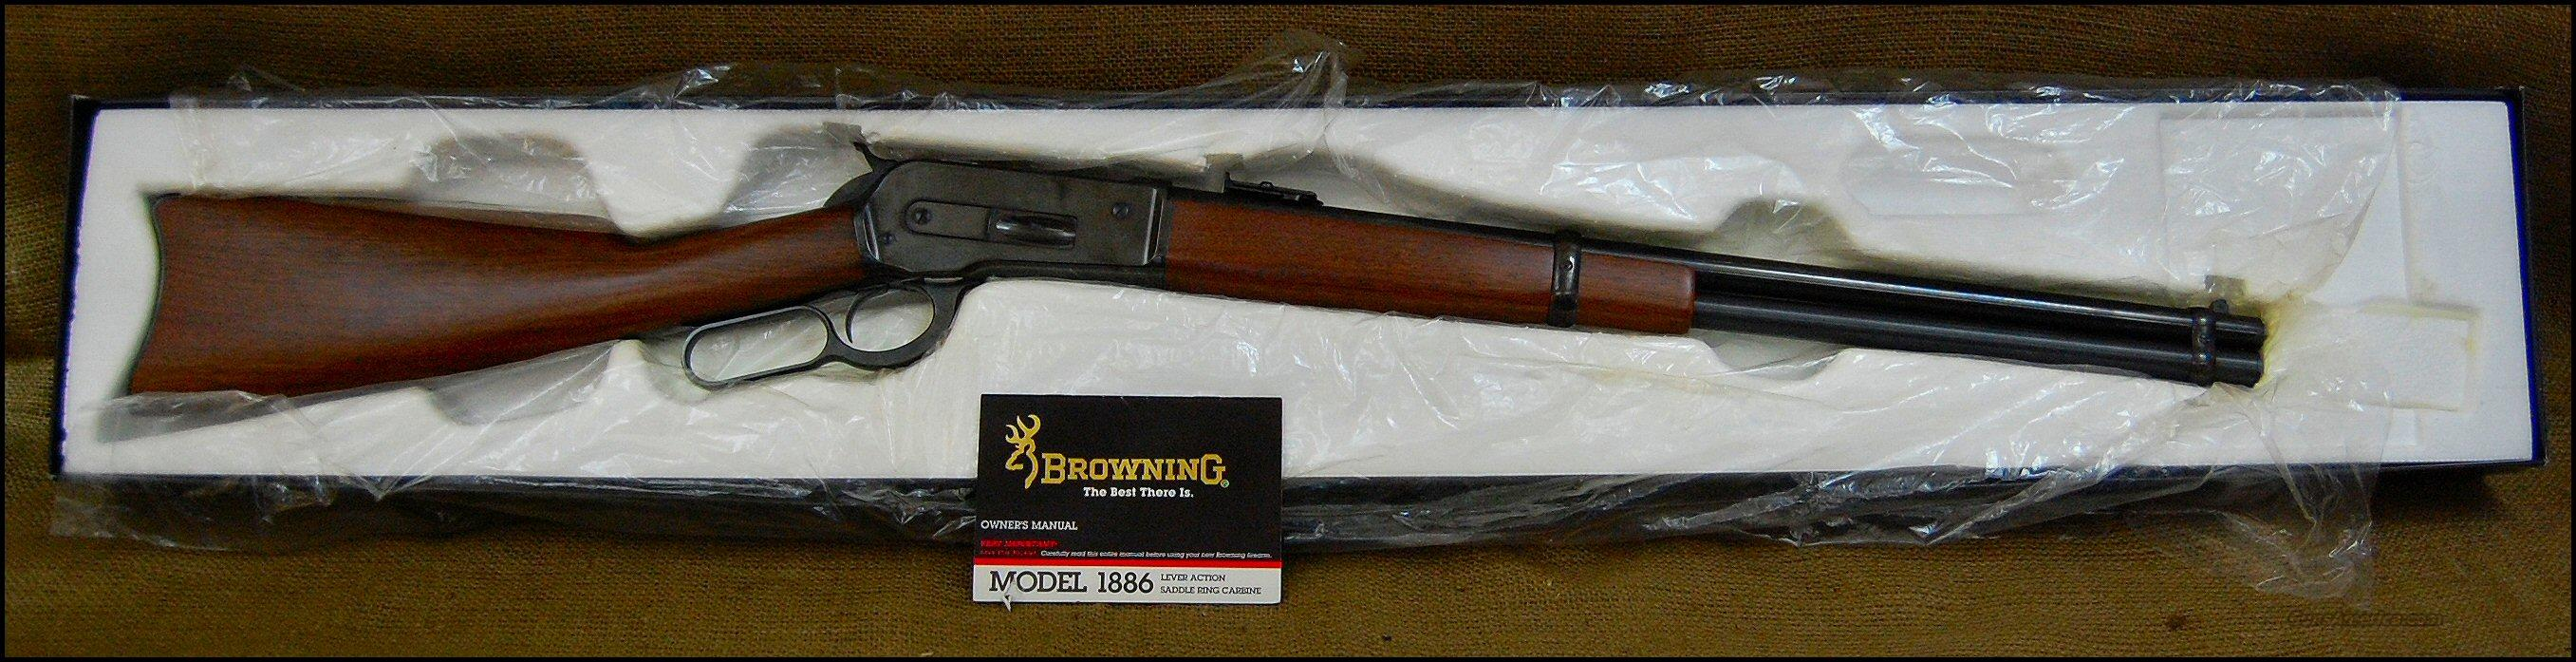 Browning - Winchester 1886 Saddle Ring Carbine SRC 45-70 NIB Unfired  Guns > Rifles > Browning Rifles > Lever Action